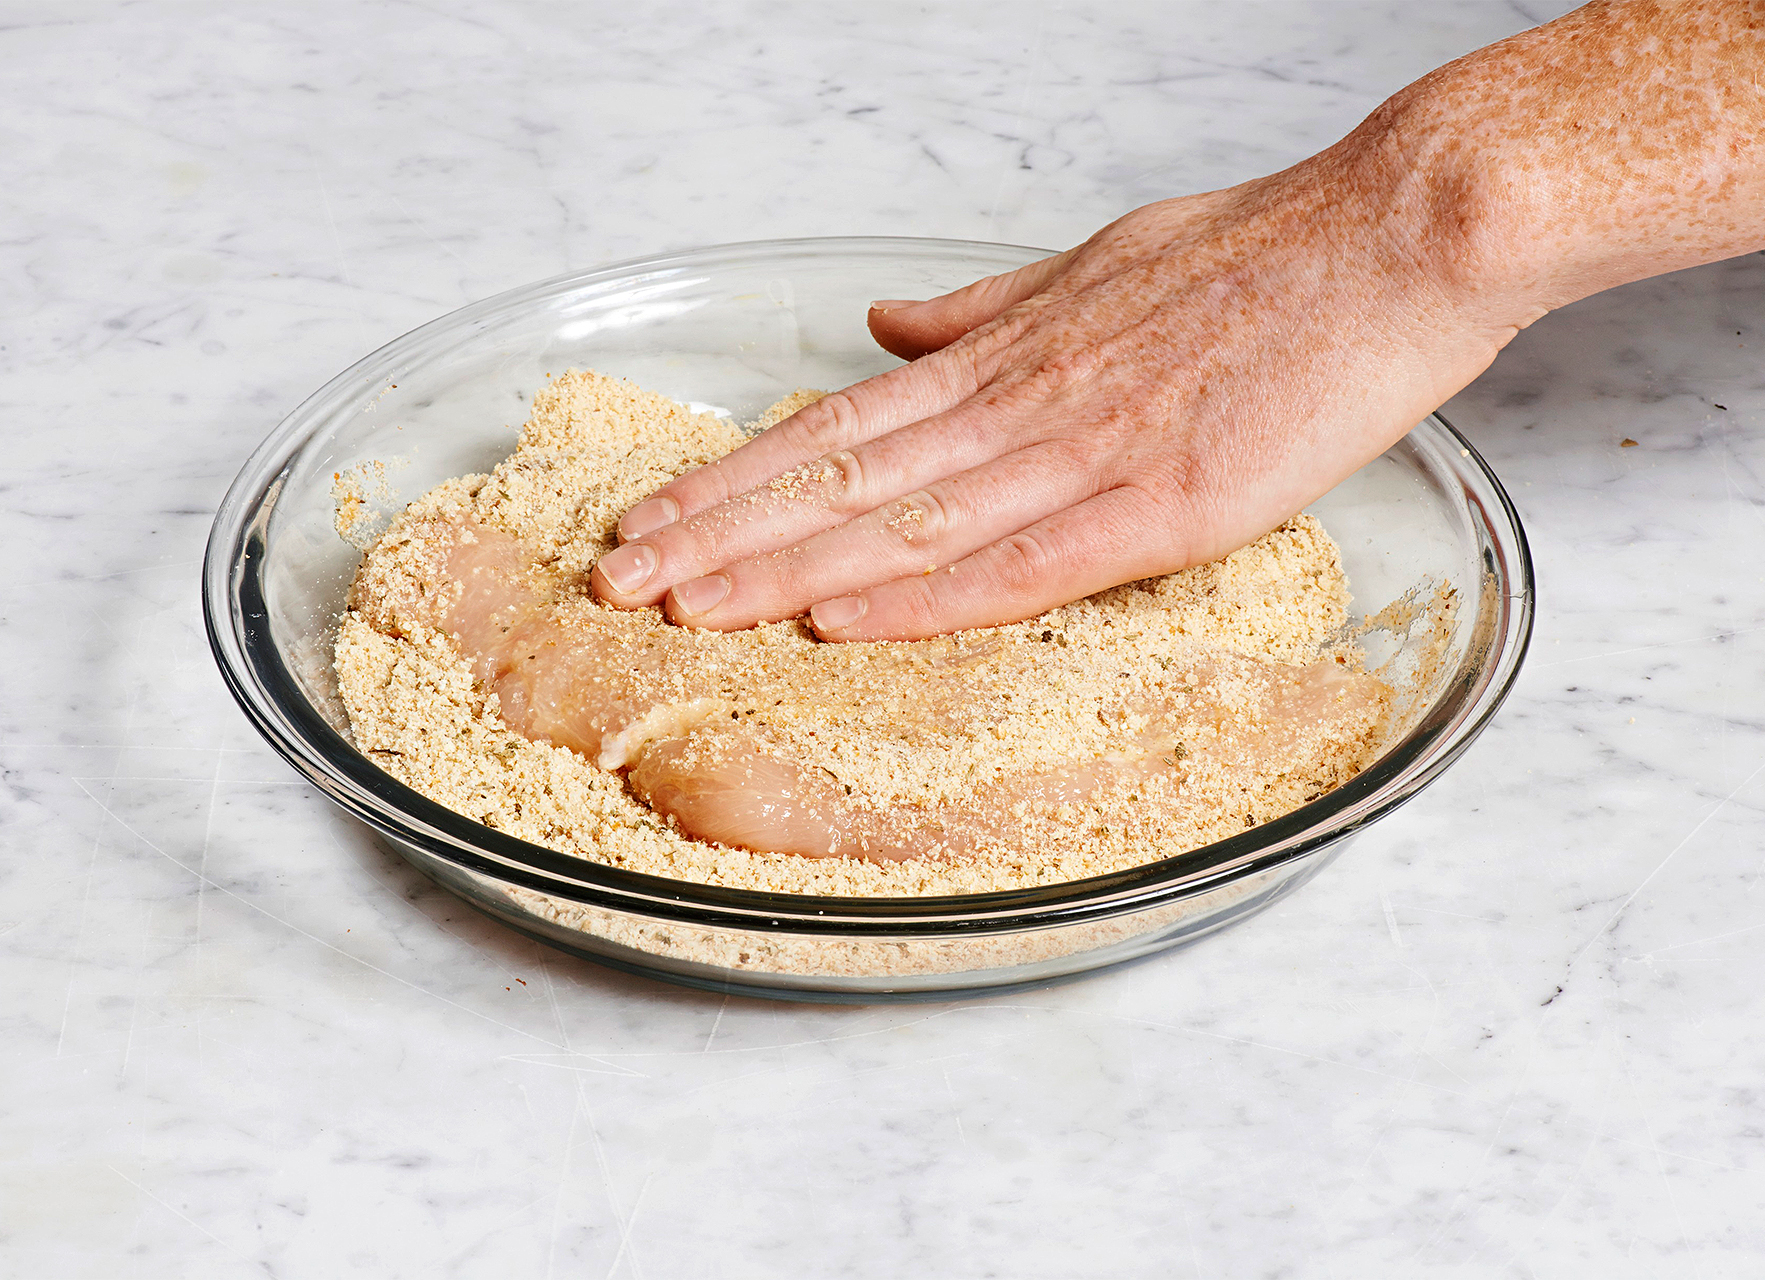 cover chicken with bread crumbs